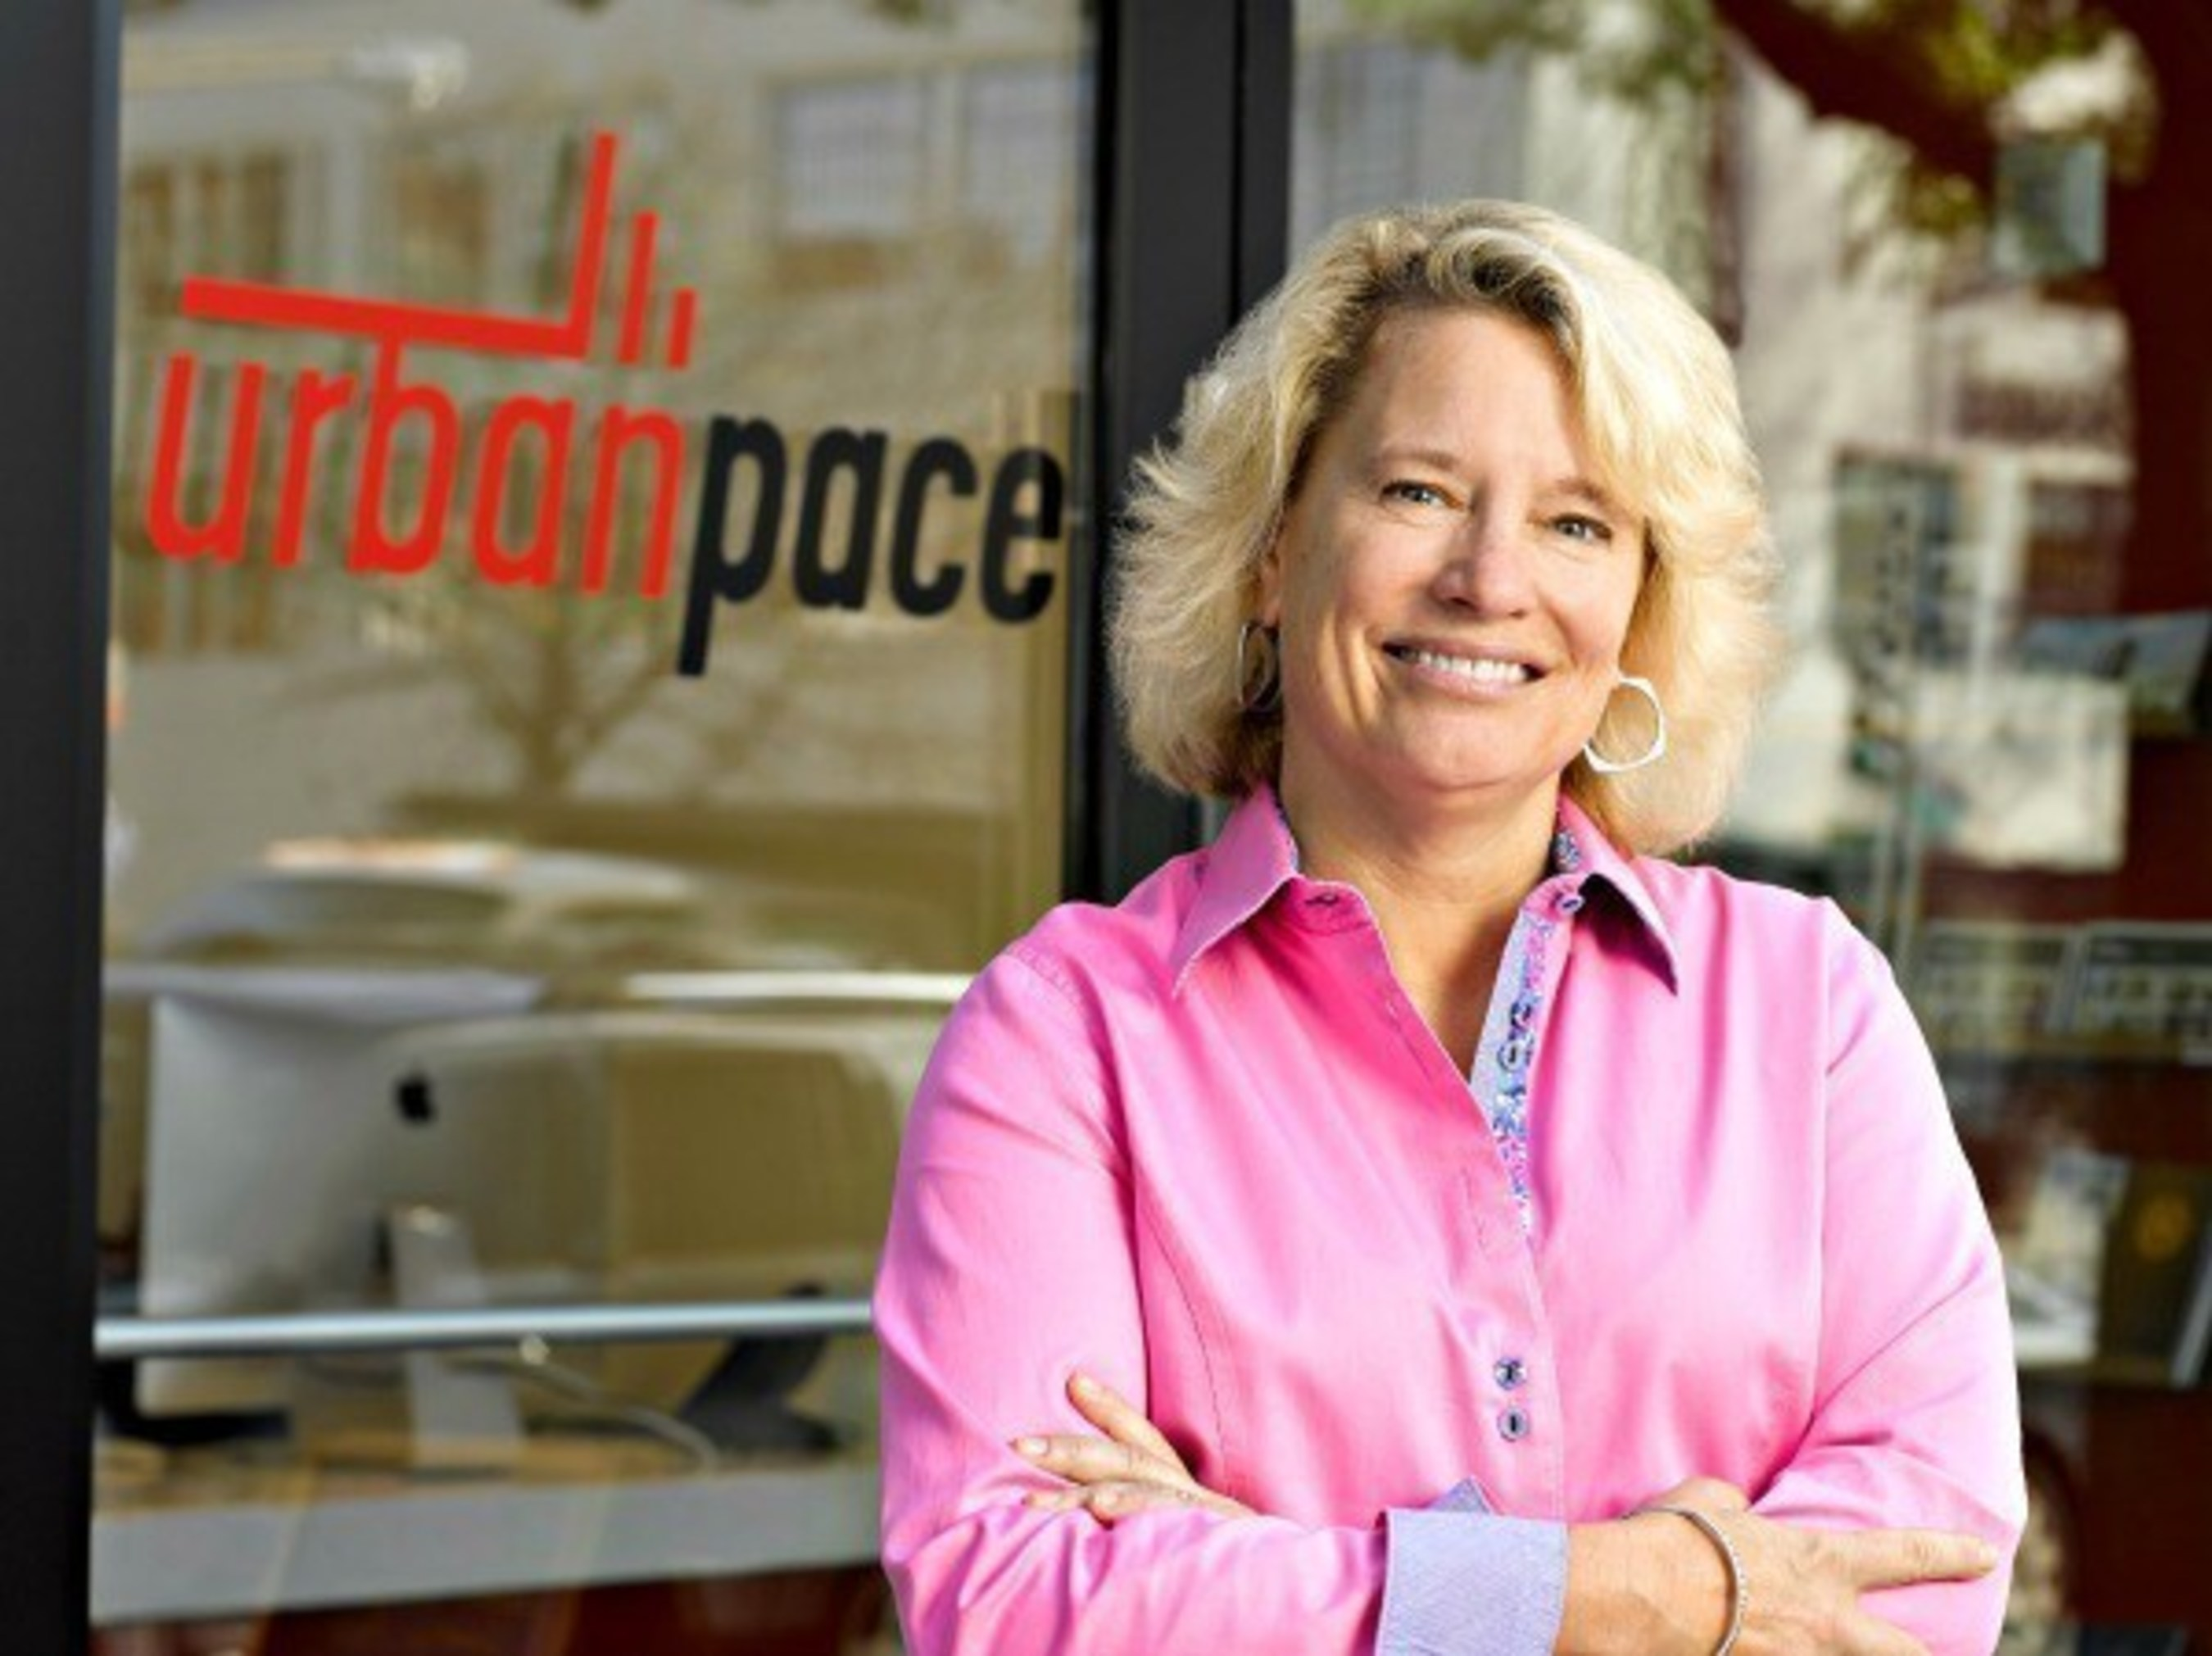 Lynn Hackney, CEO of Urban Pace, a Long & Foster Company